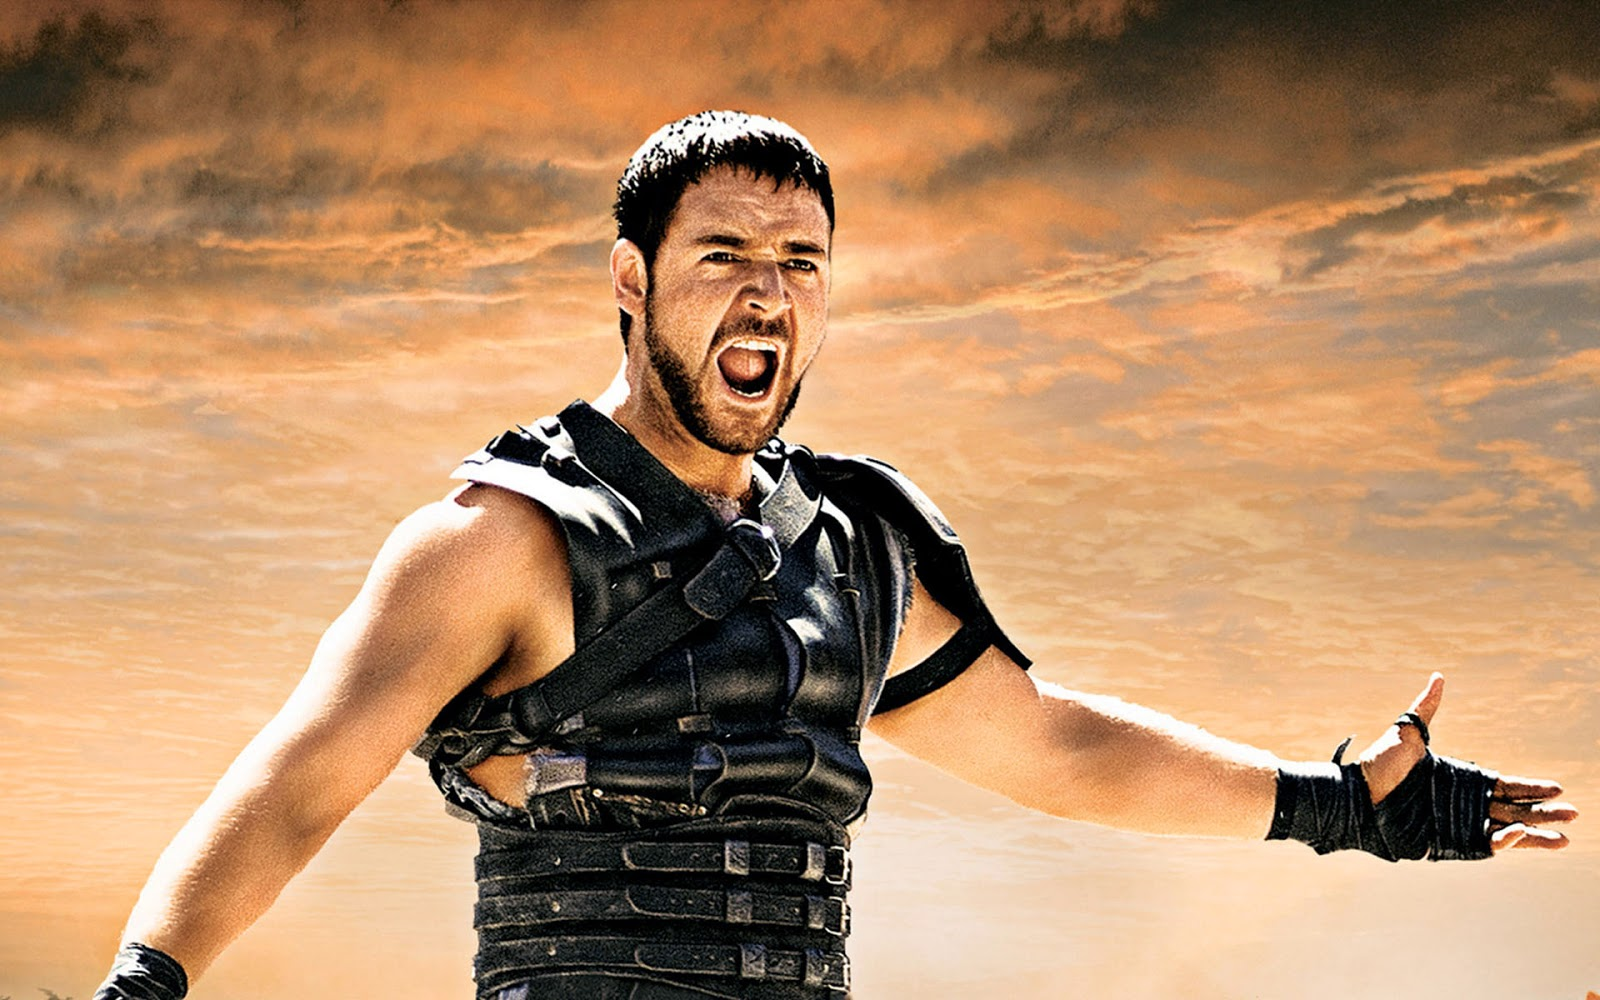 a review of the movie gladiator by ridley scott Ridley scott is one of a small group of directors who have watched their film win best picture at the academy awards, yet also found themselves overlooked for a best director gong nonetheless gladiator – the picture concerned – remains a firm favourite, and it turned russell crowe from an acclaimed actor into a movie star.